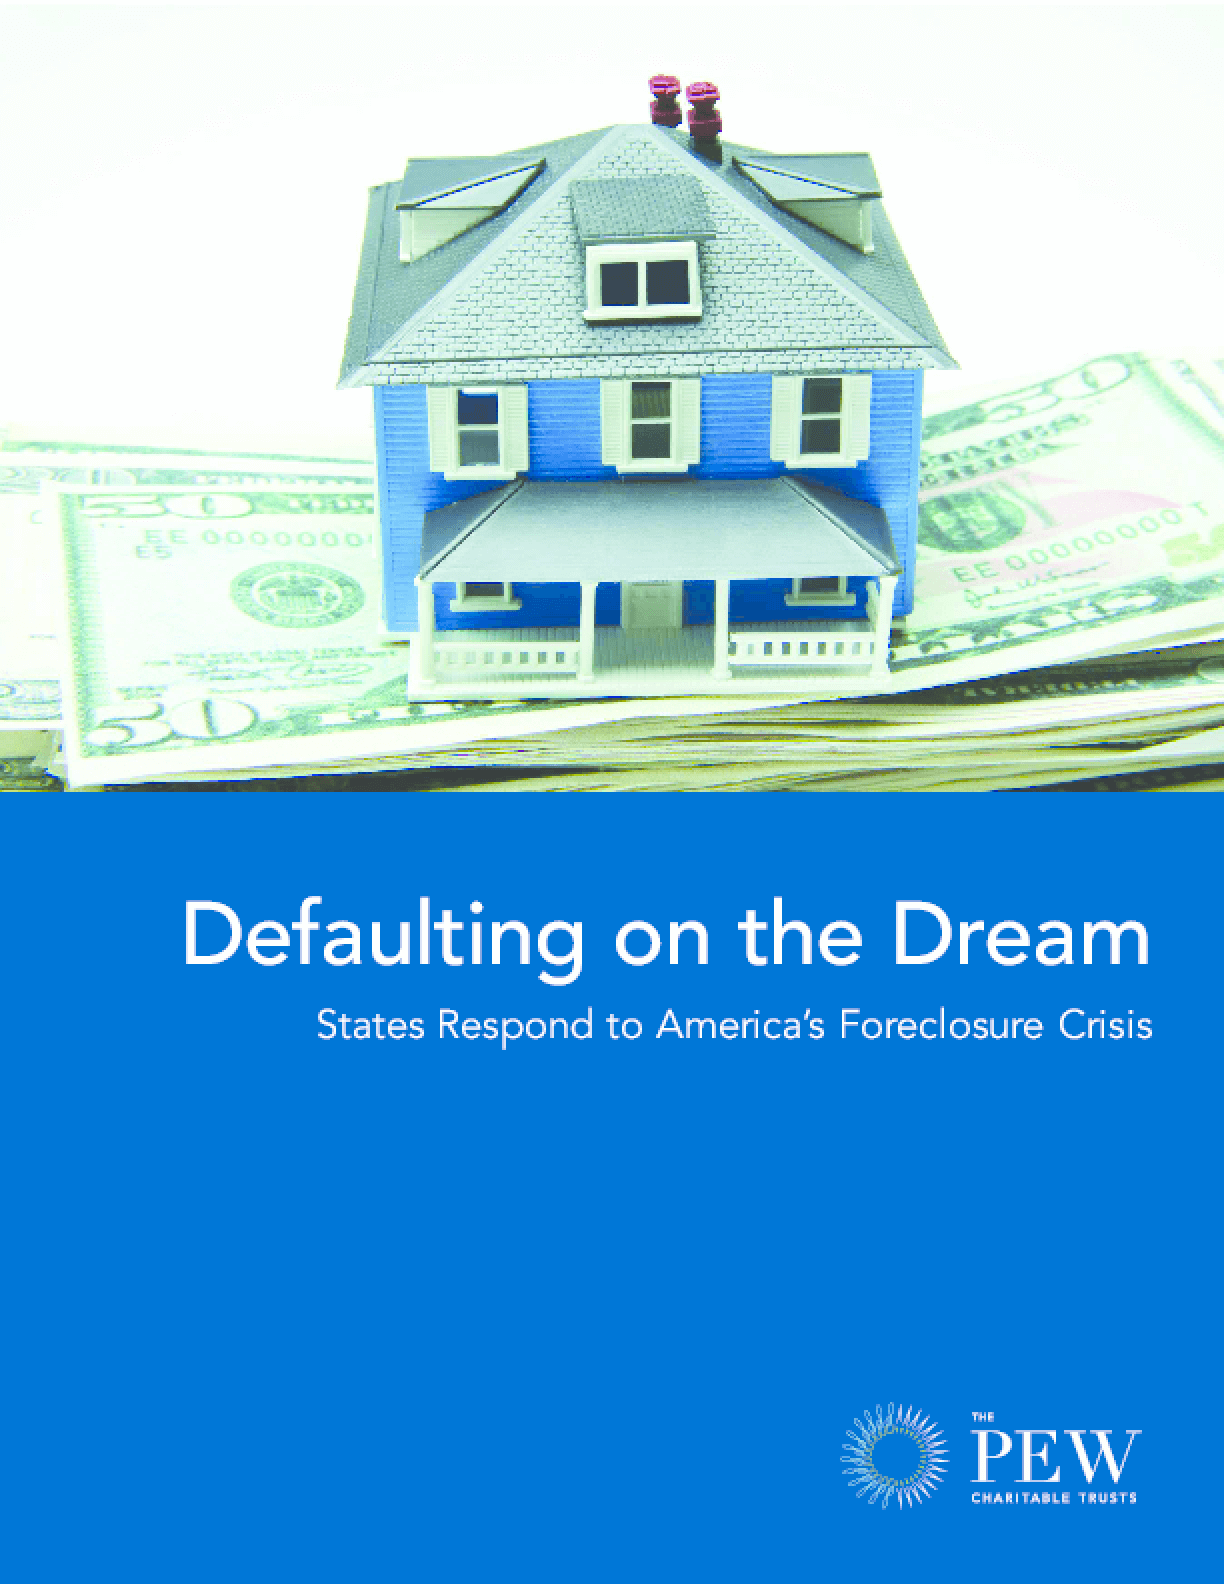 Defaulting on the Dream: States Respond to America's Foreclosure Crisis